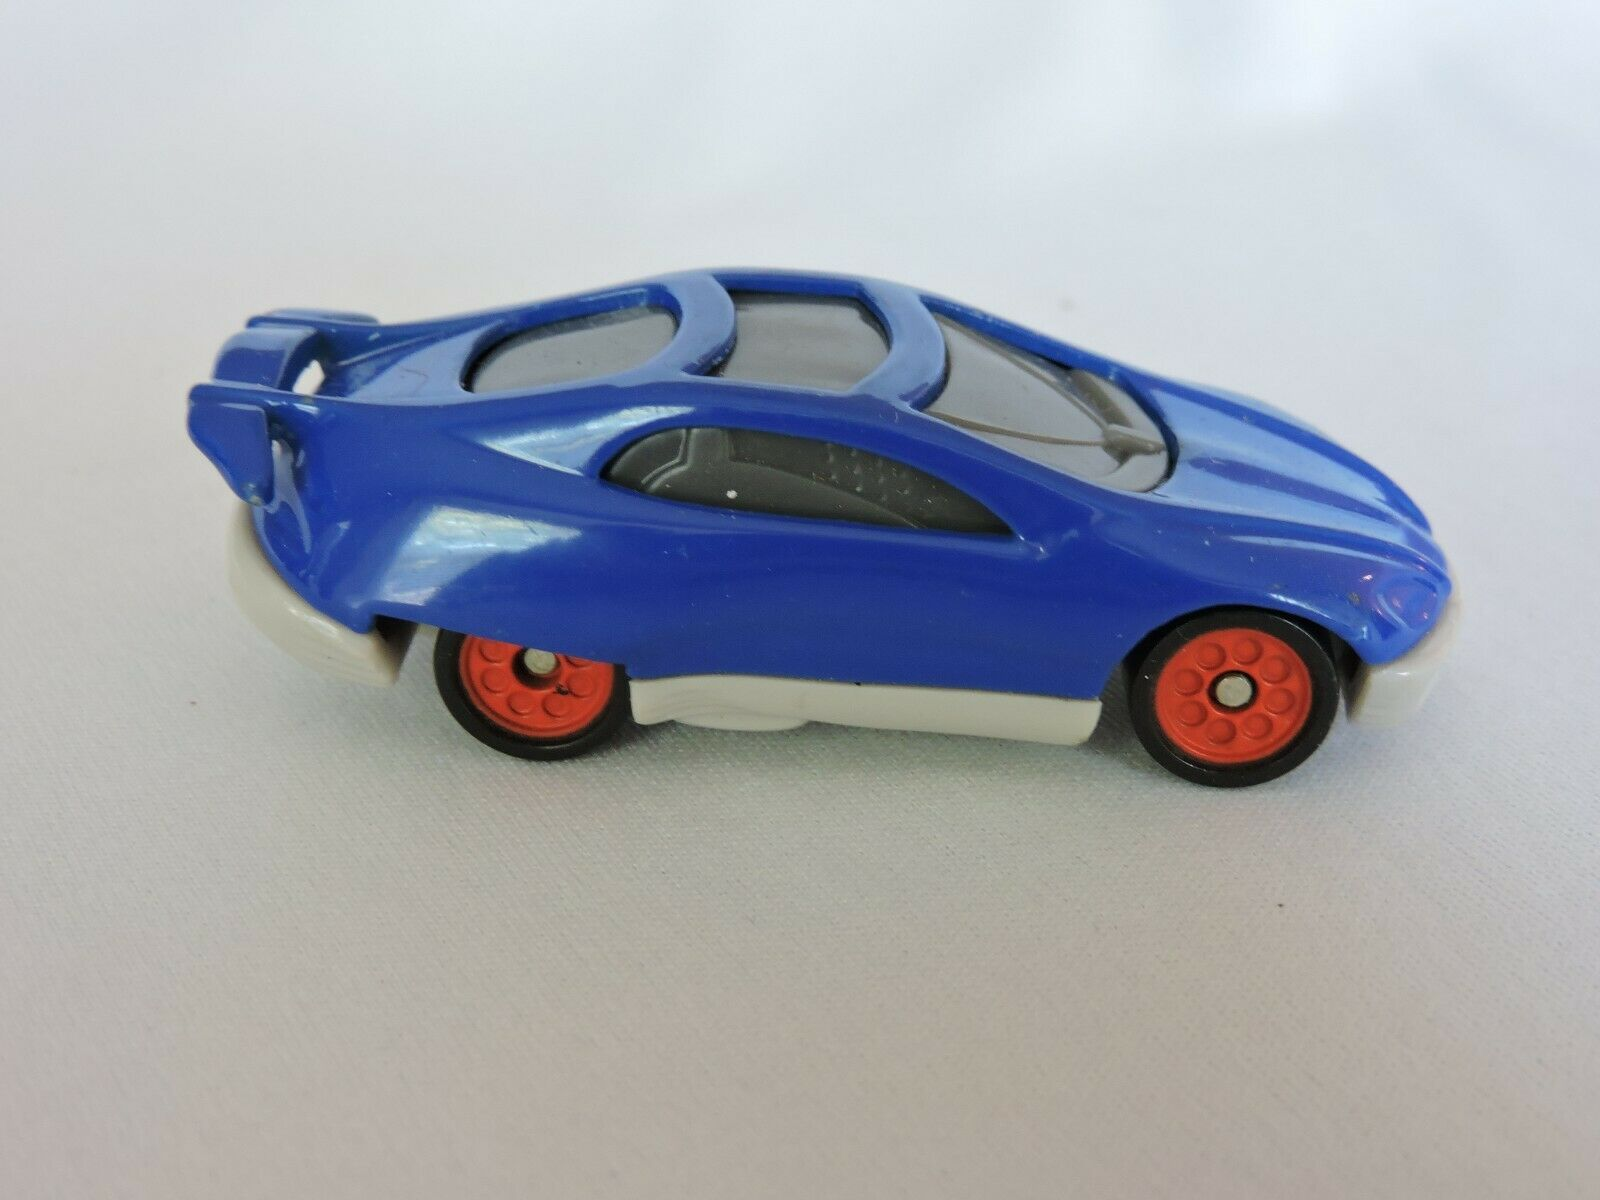 Hot Wheels Blue Toy Car Red Tires 1999 Mattel Race Car McDonalds Happy Meal - $5.40